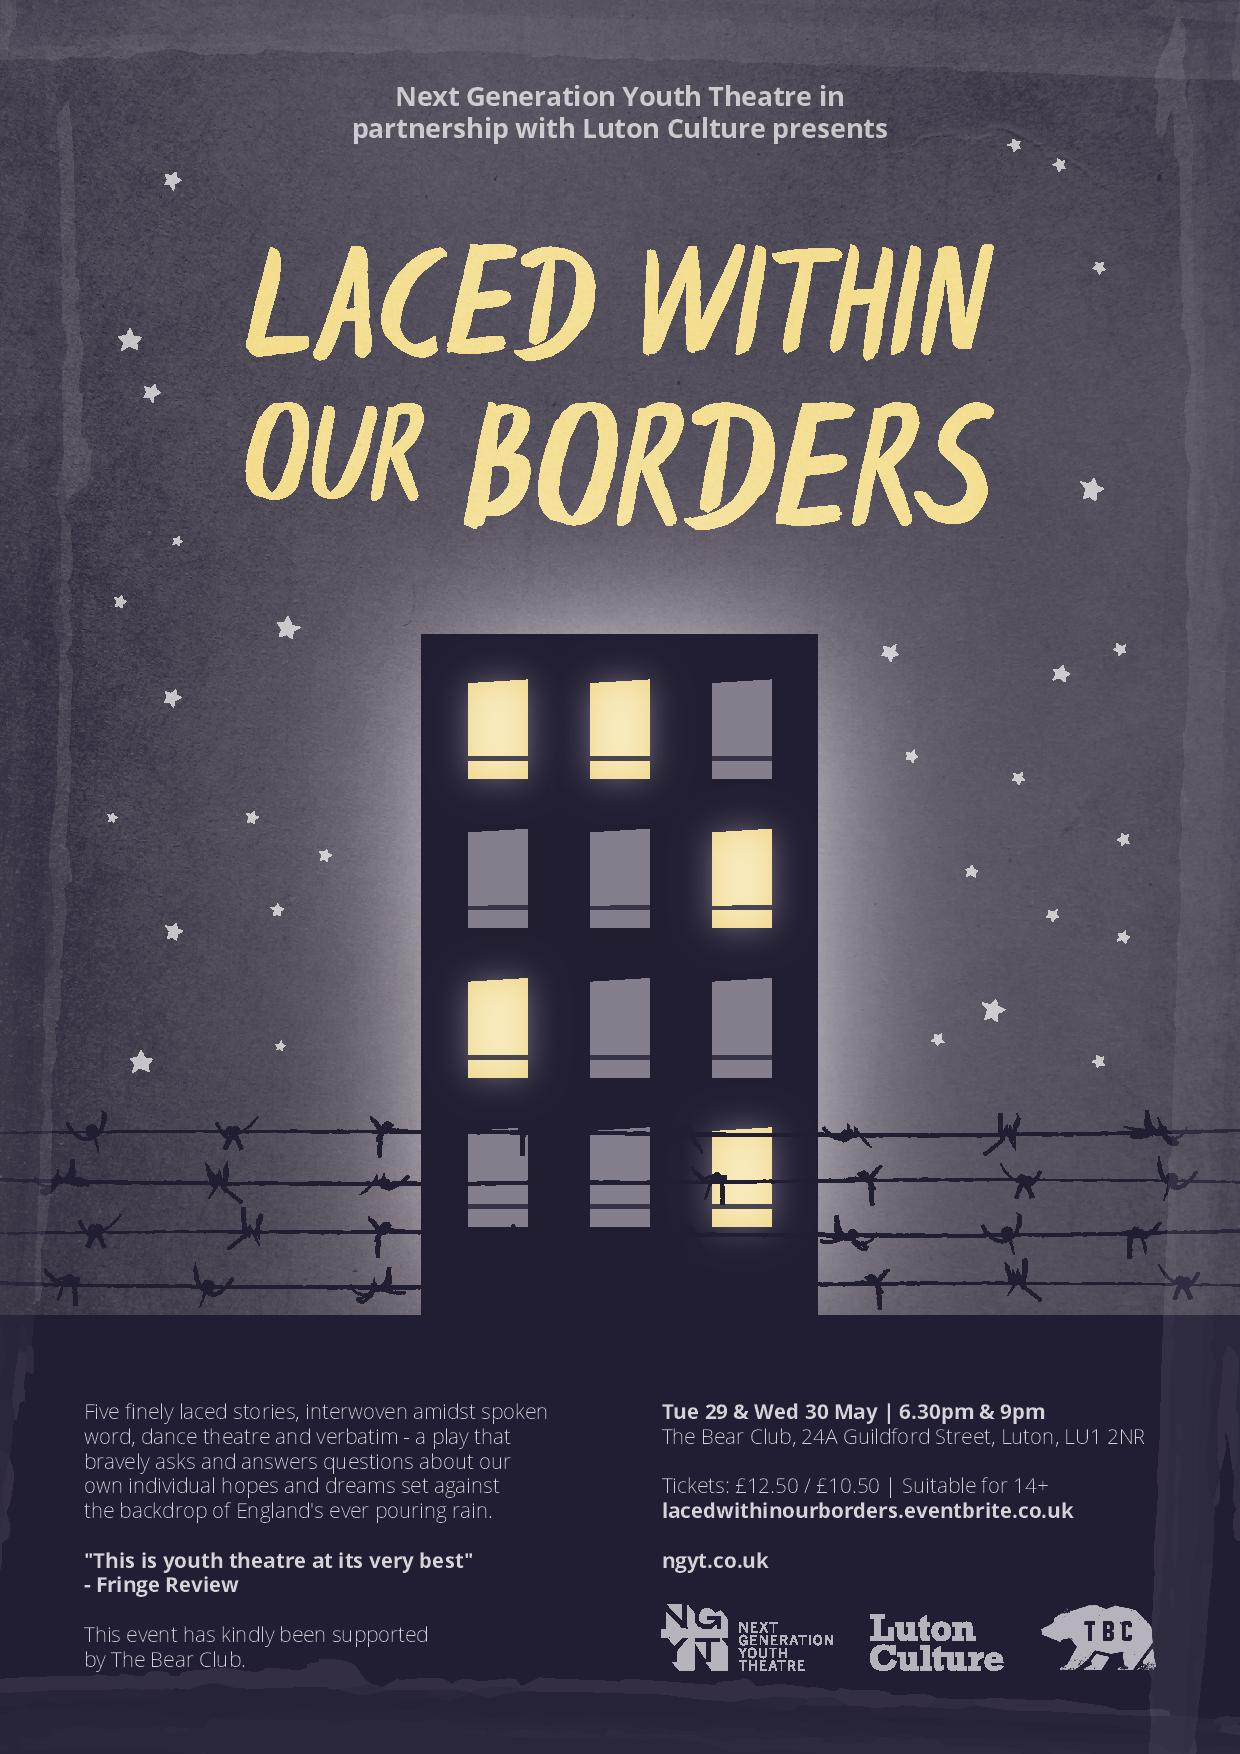 Laced within our borders poster